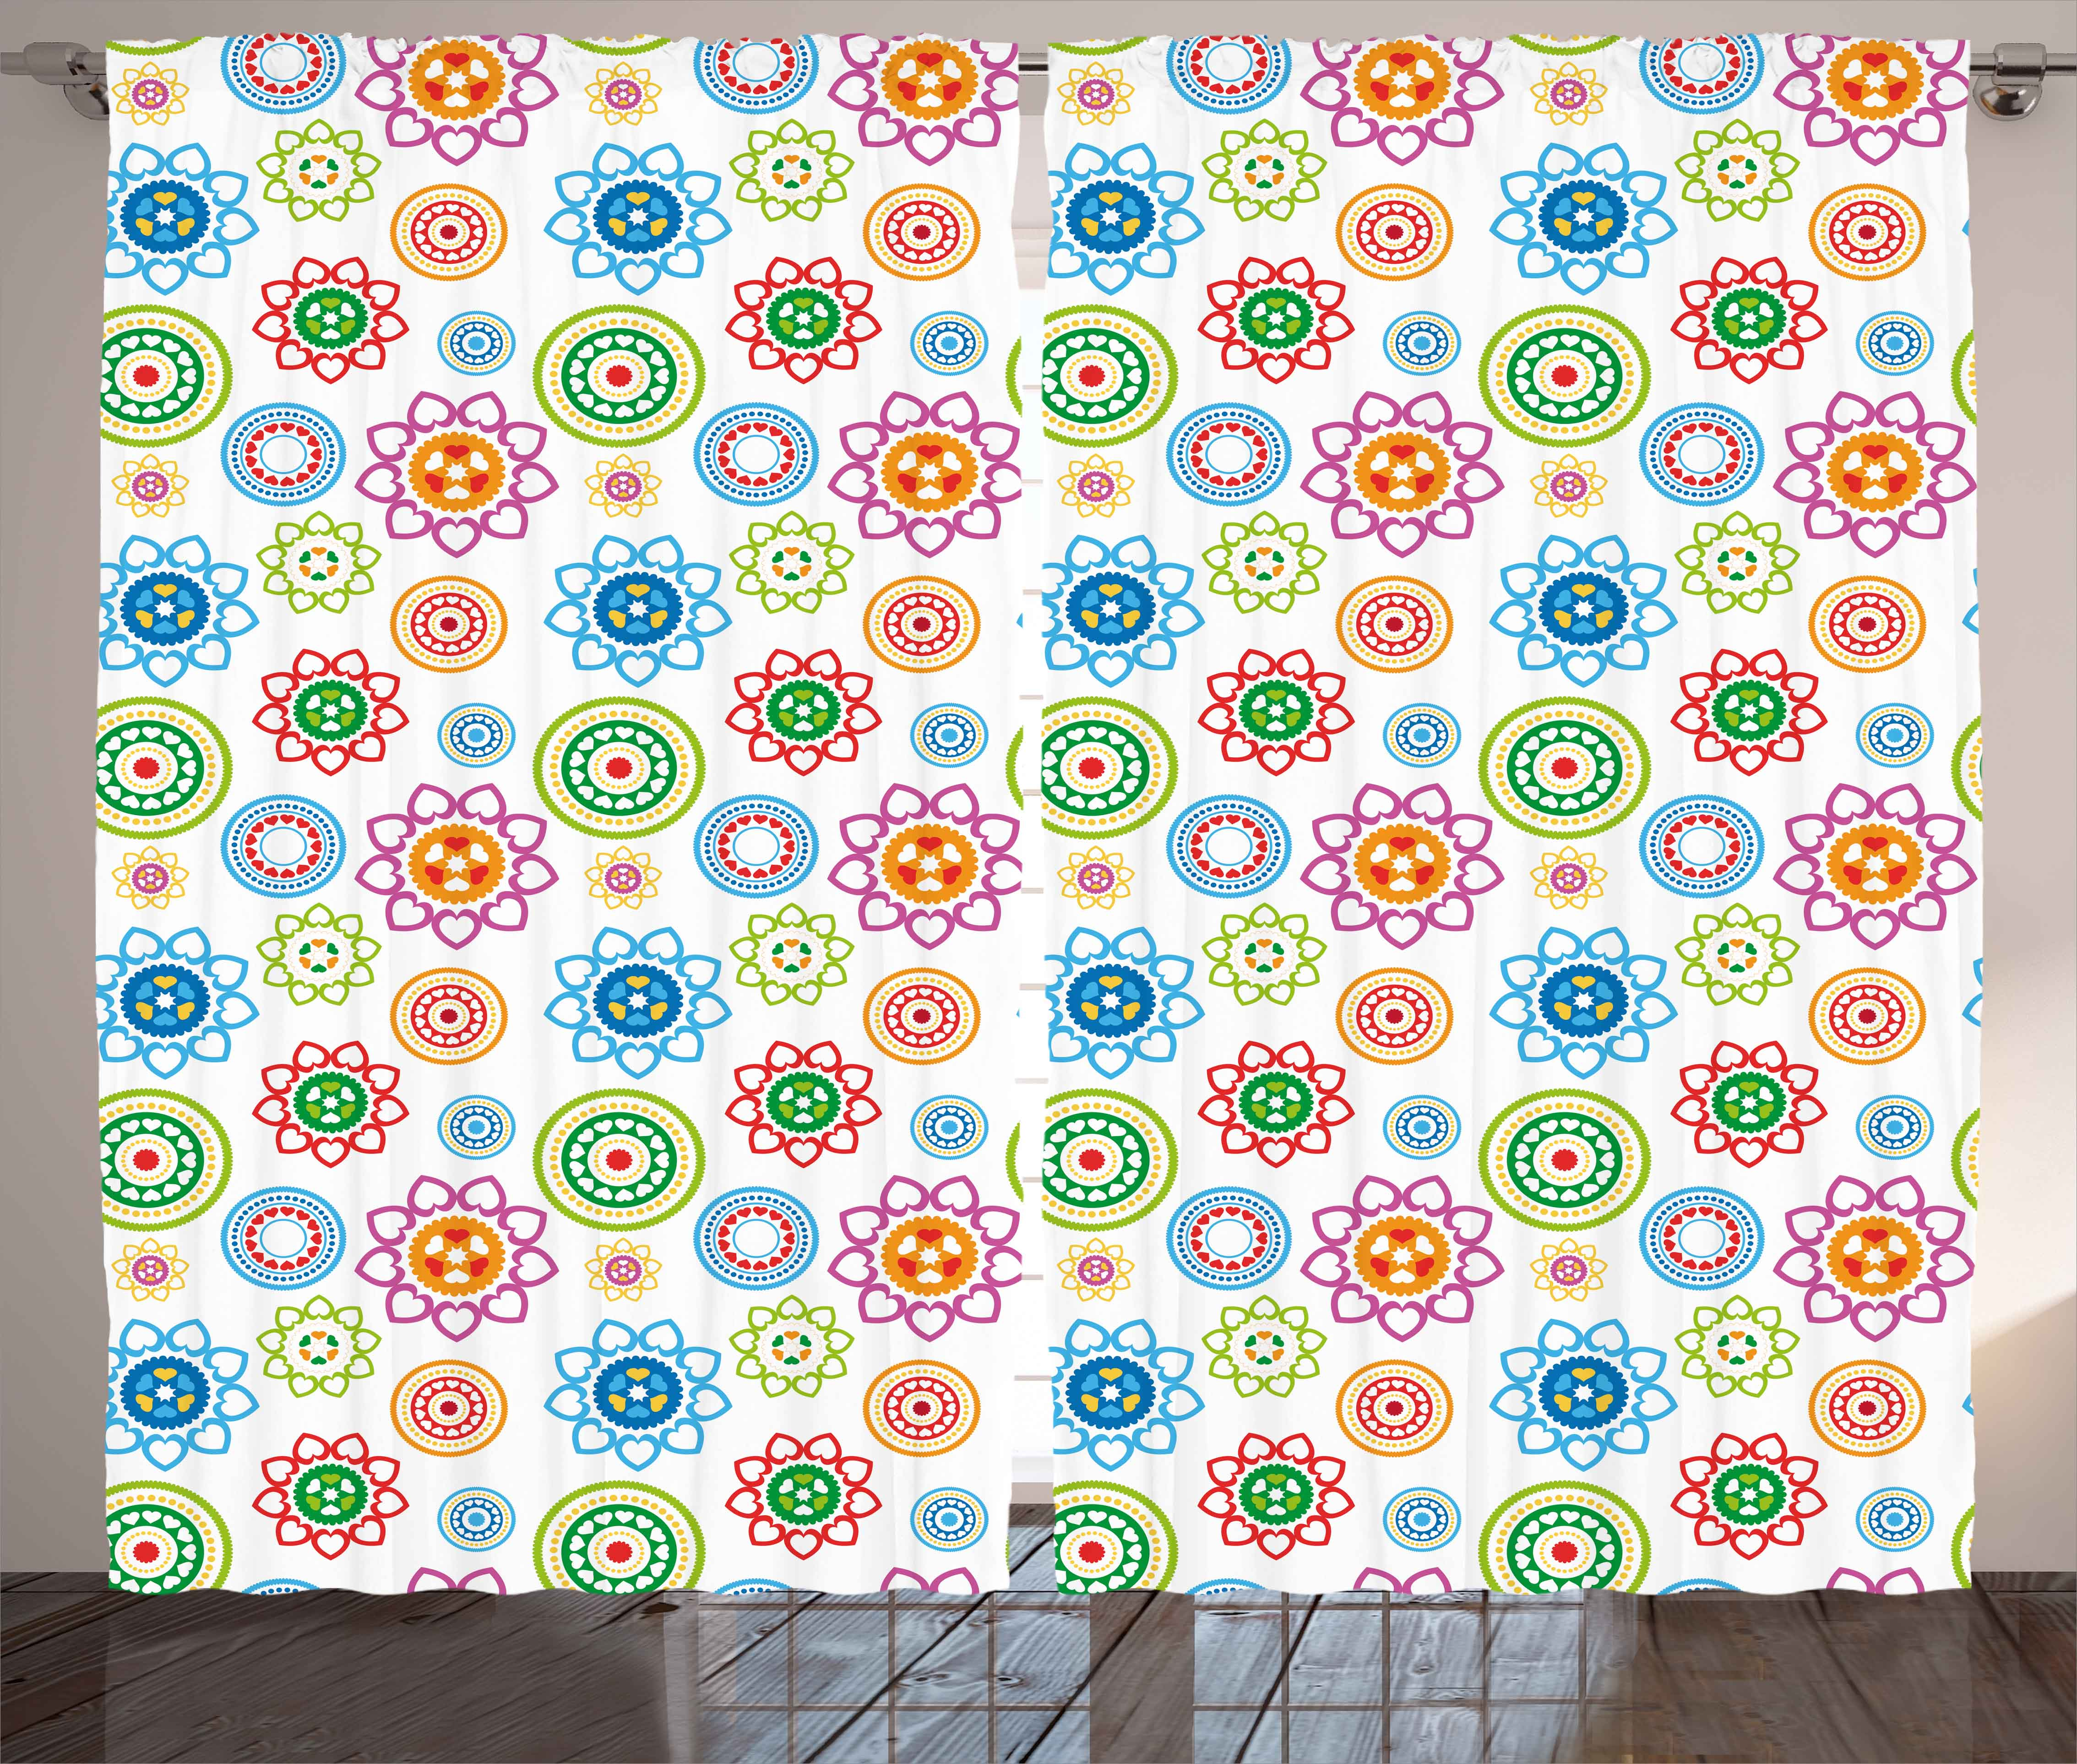 Modern Decor Curtains 2 Panels Set, Ethnic Colorful Indian Asian Inspired  Patterns With Flower Like